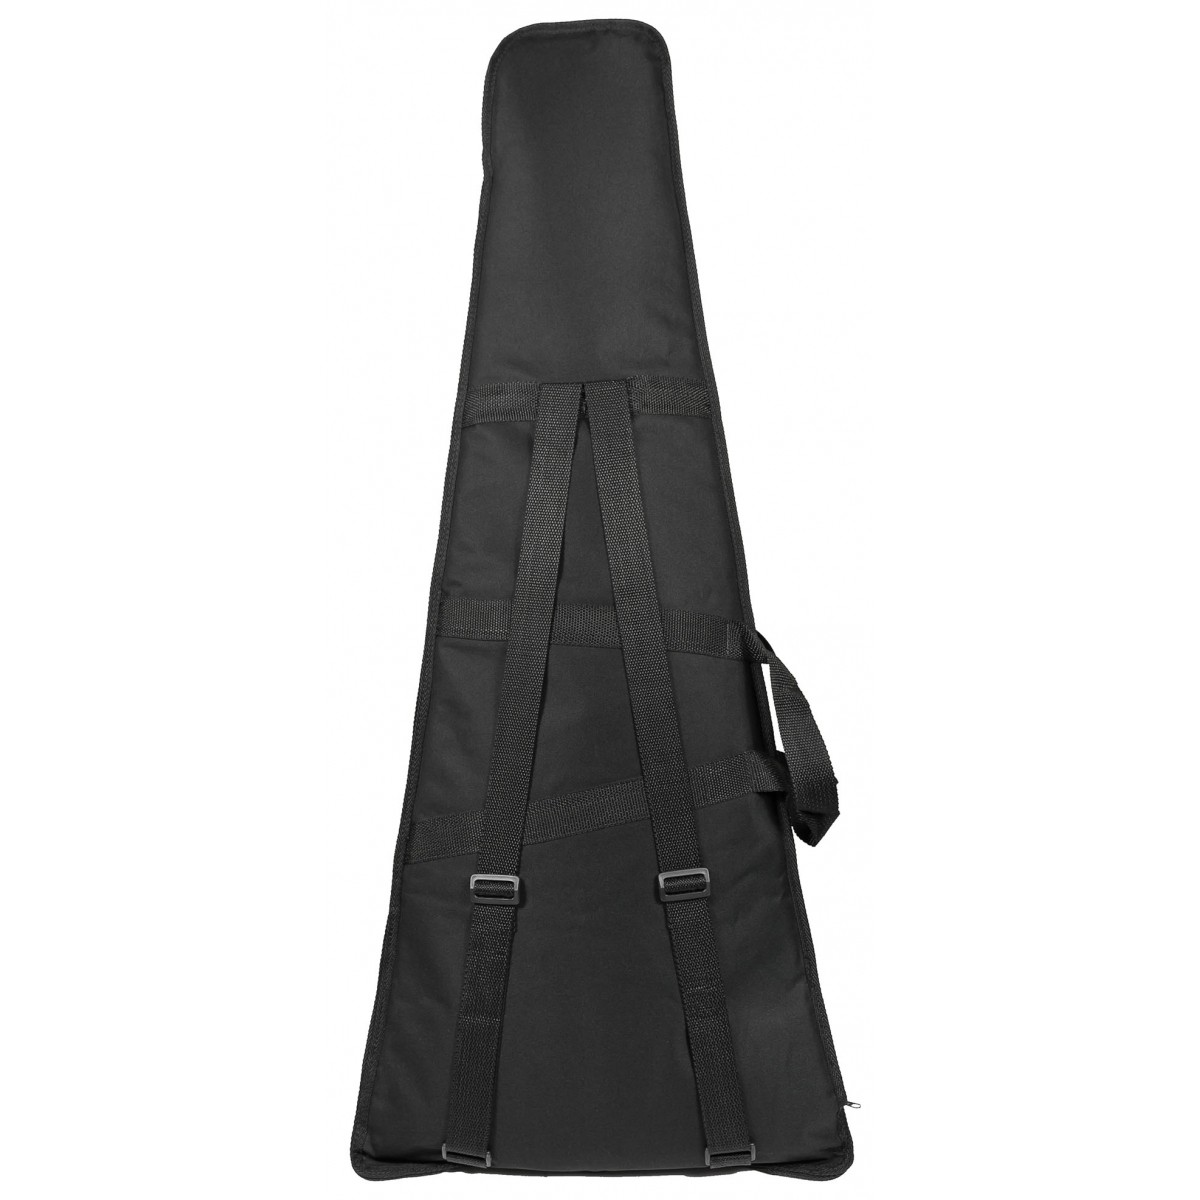 Capa Guitarra Soft Case Start Almofadada - Lilás